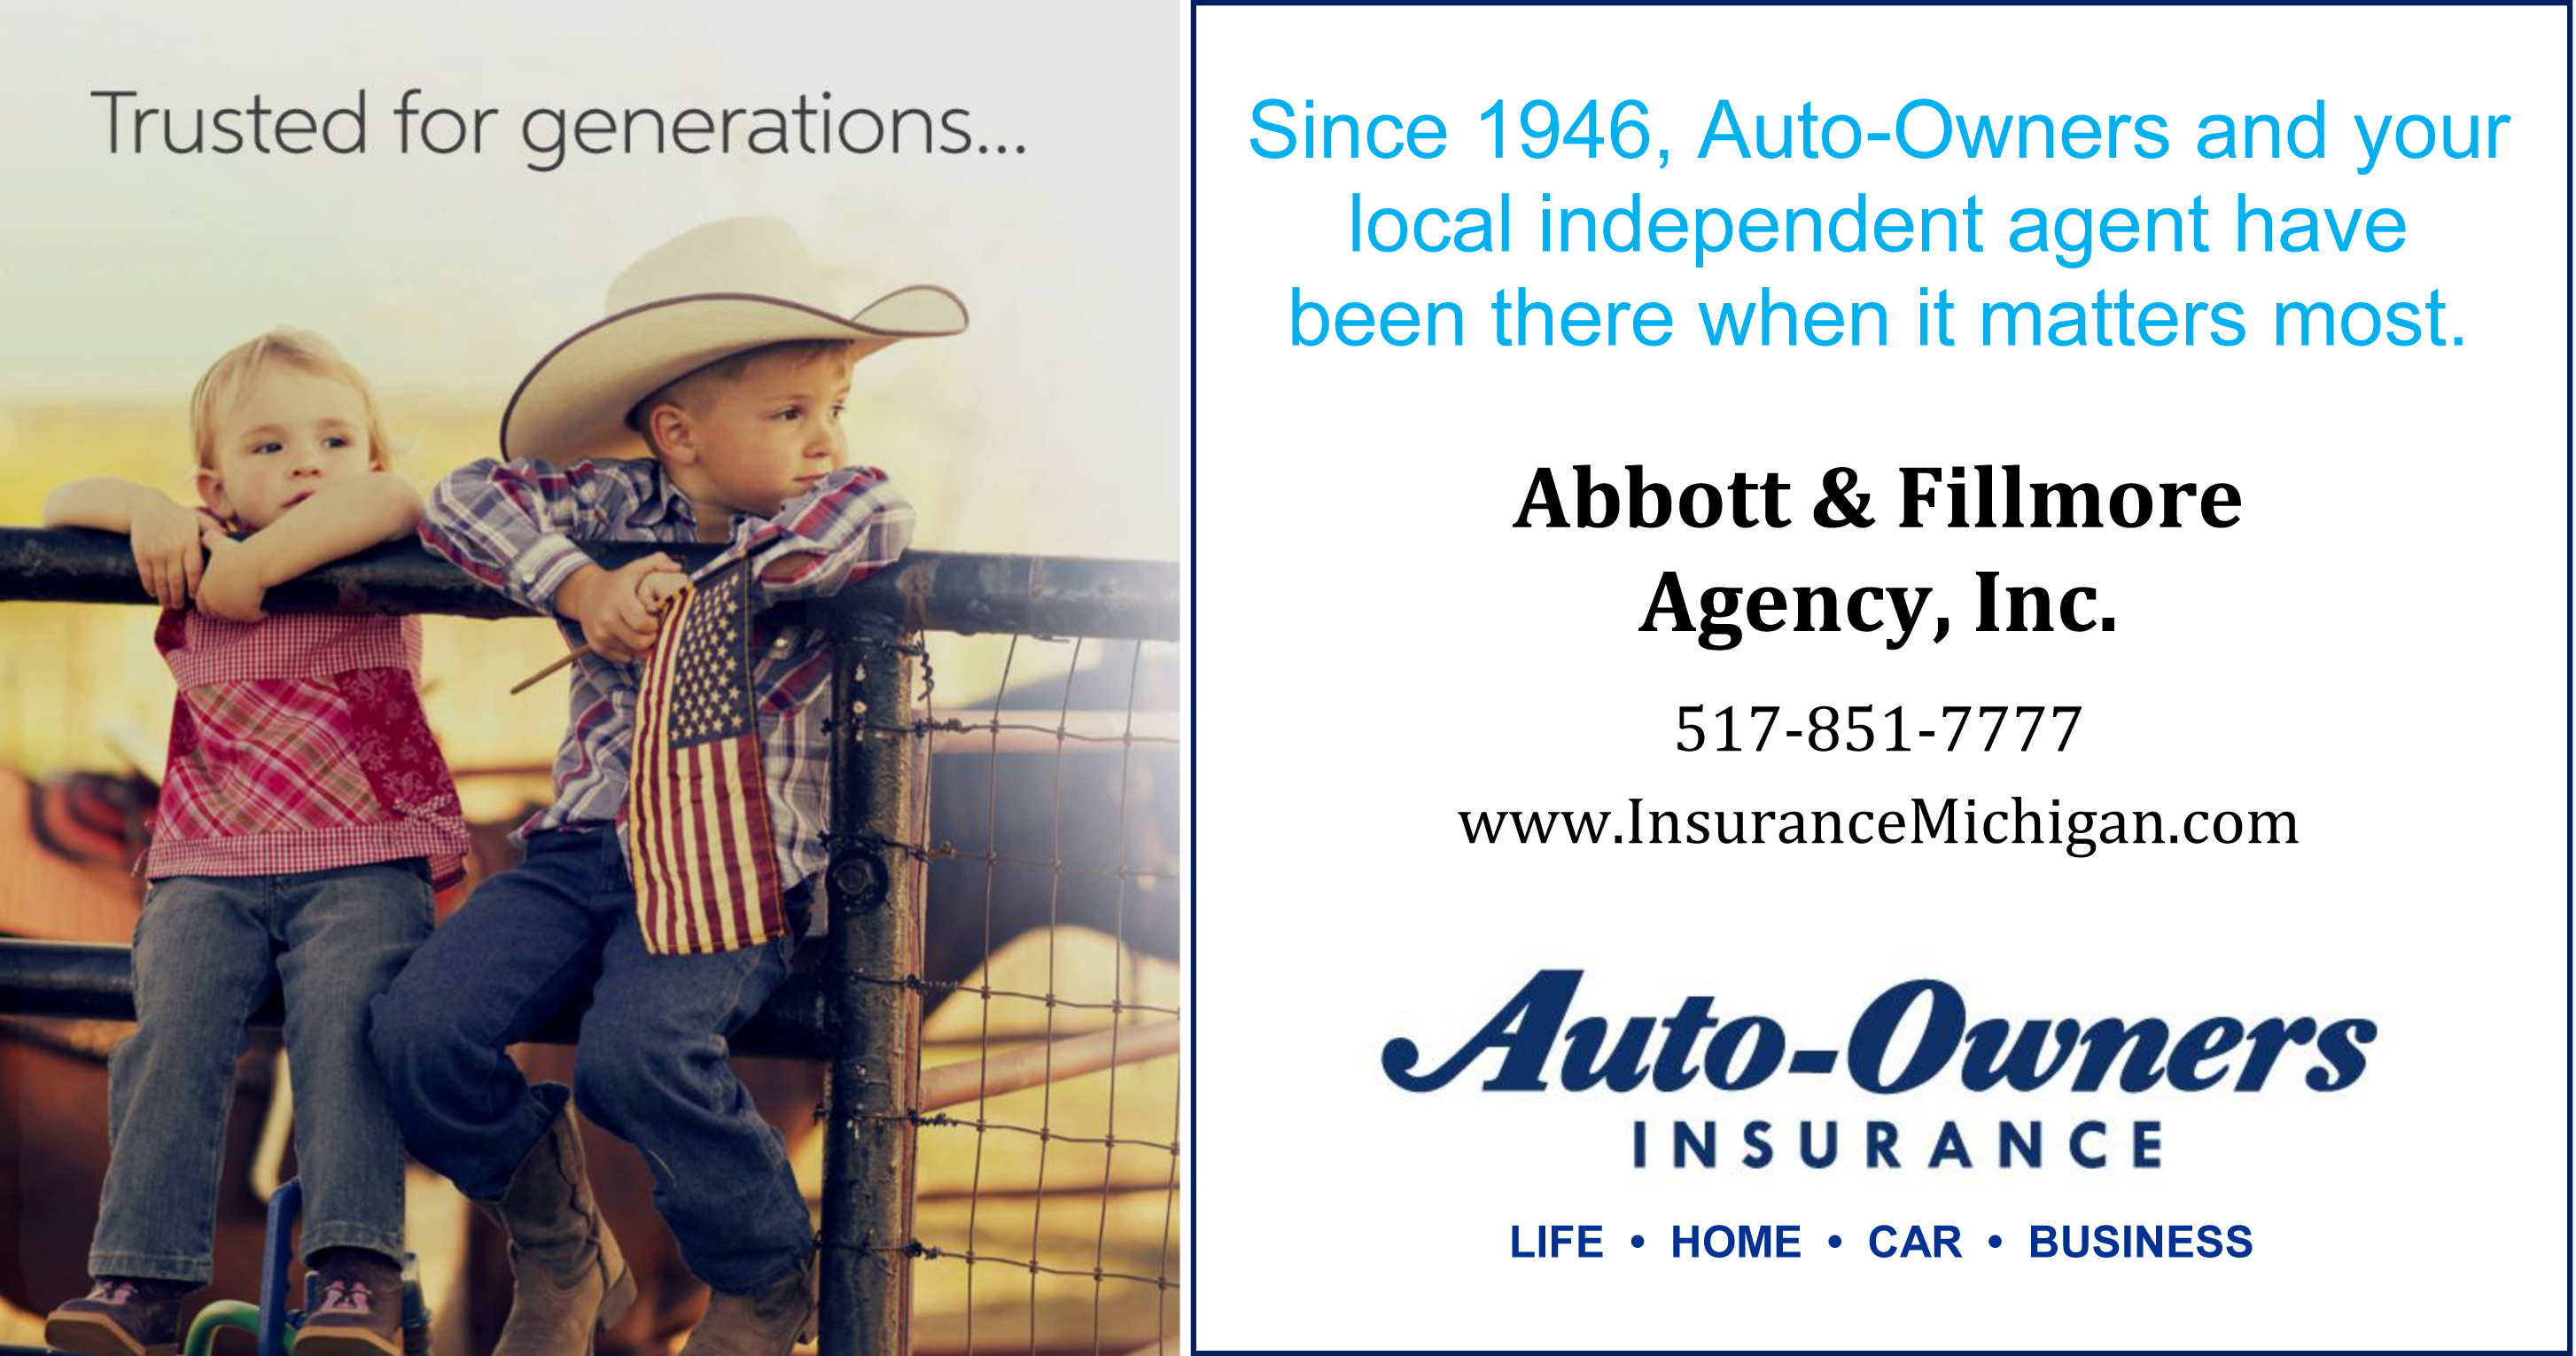 Abbott & Fillmore Agency, Inc.